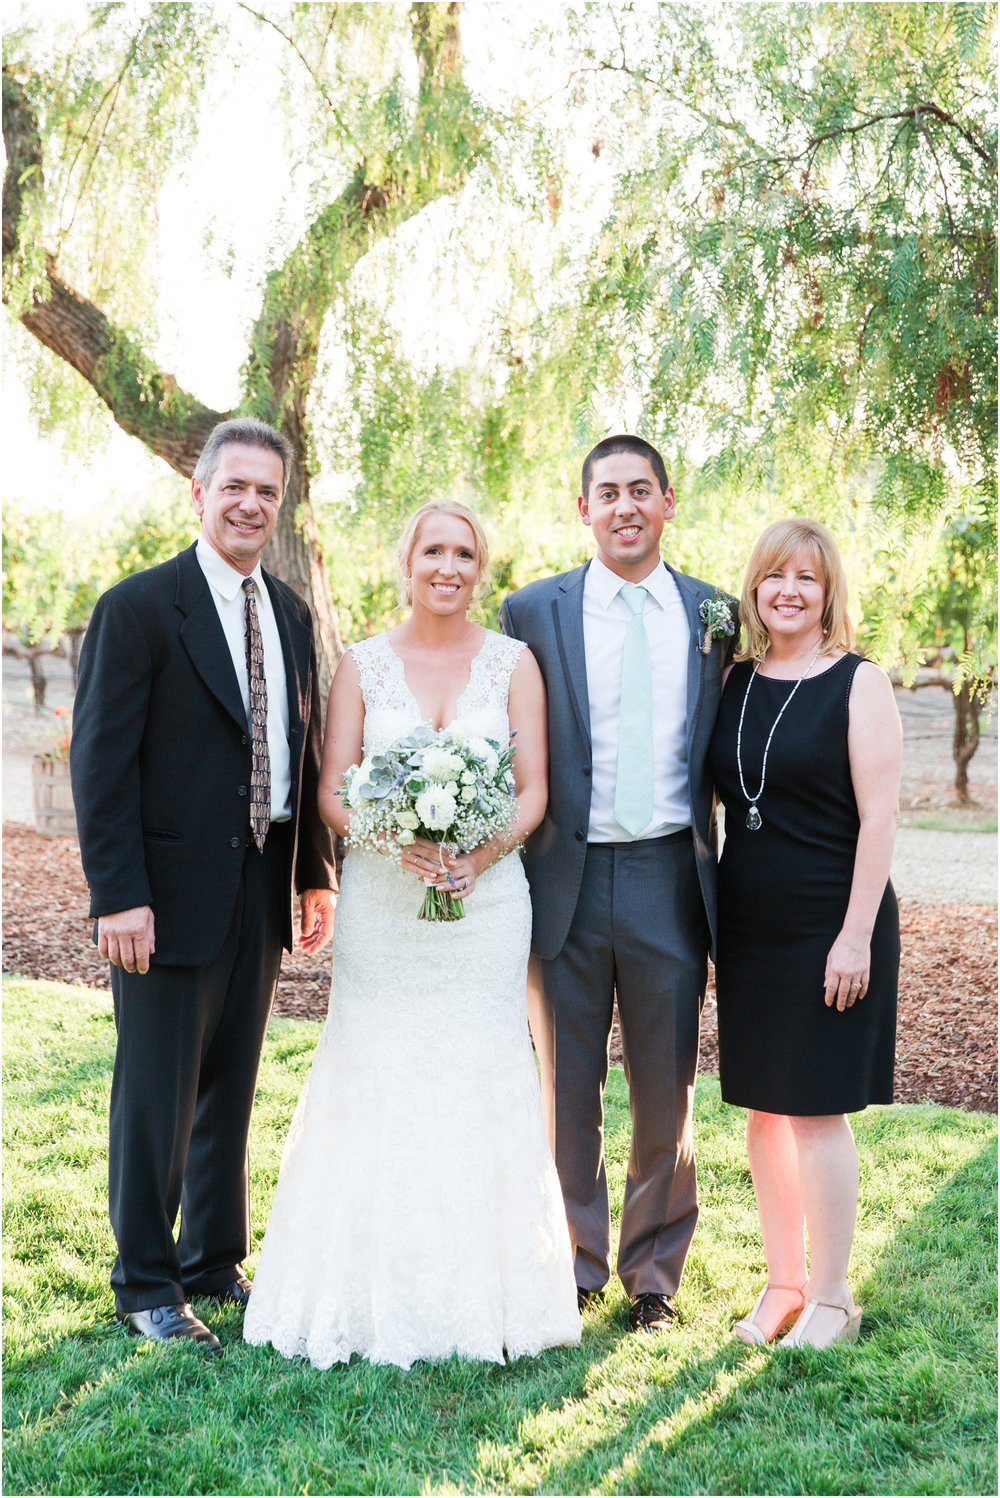 Retzlaff Winery wedding pictures by Briana Calderon Photography_2323.jpg